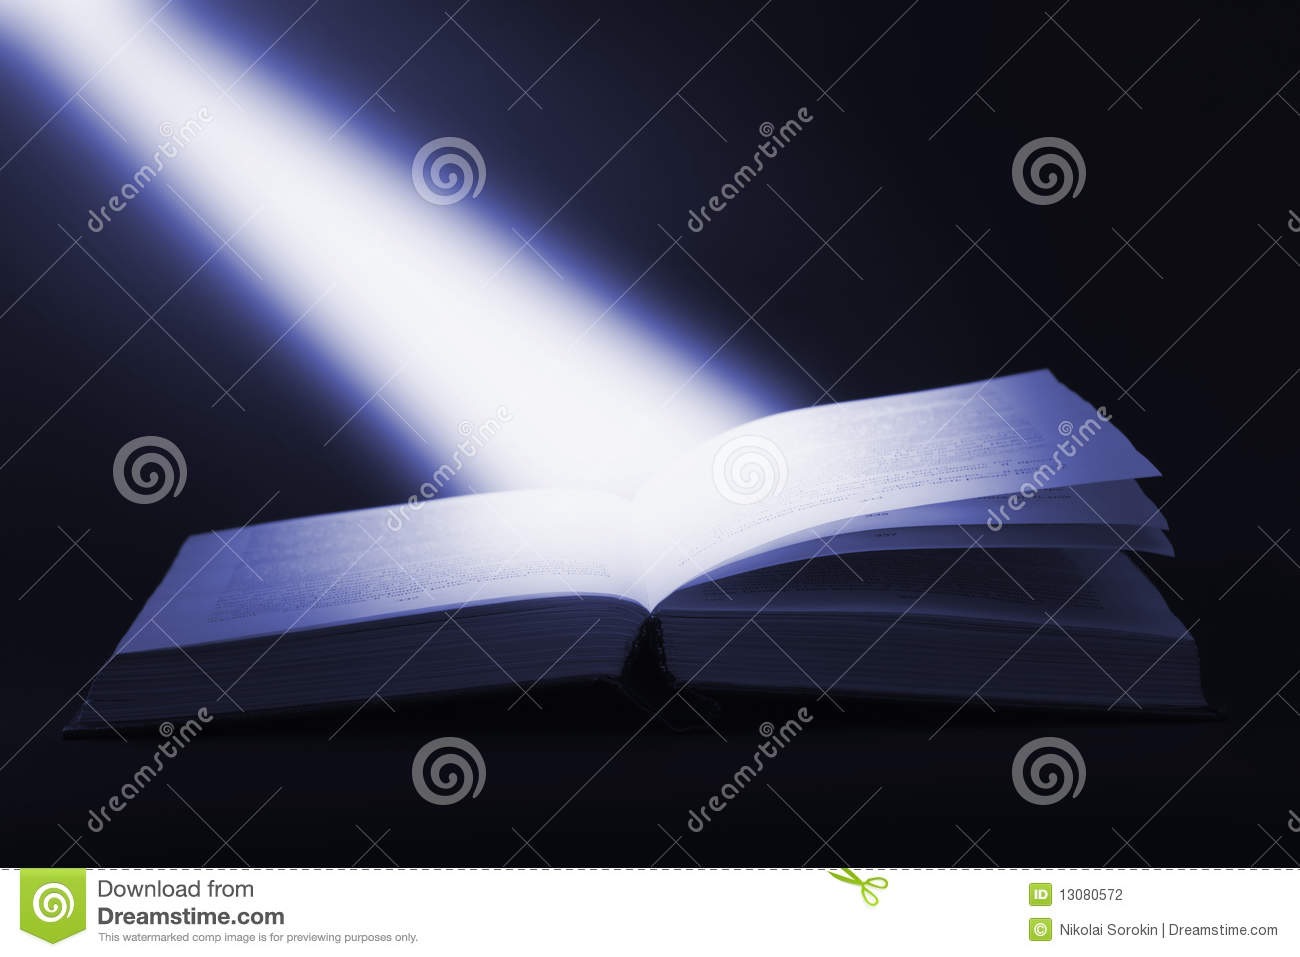 Book and beam